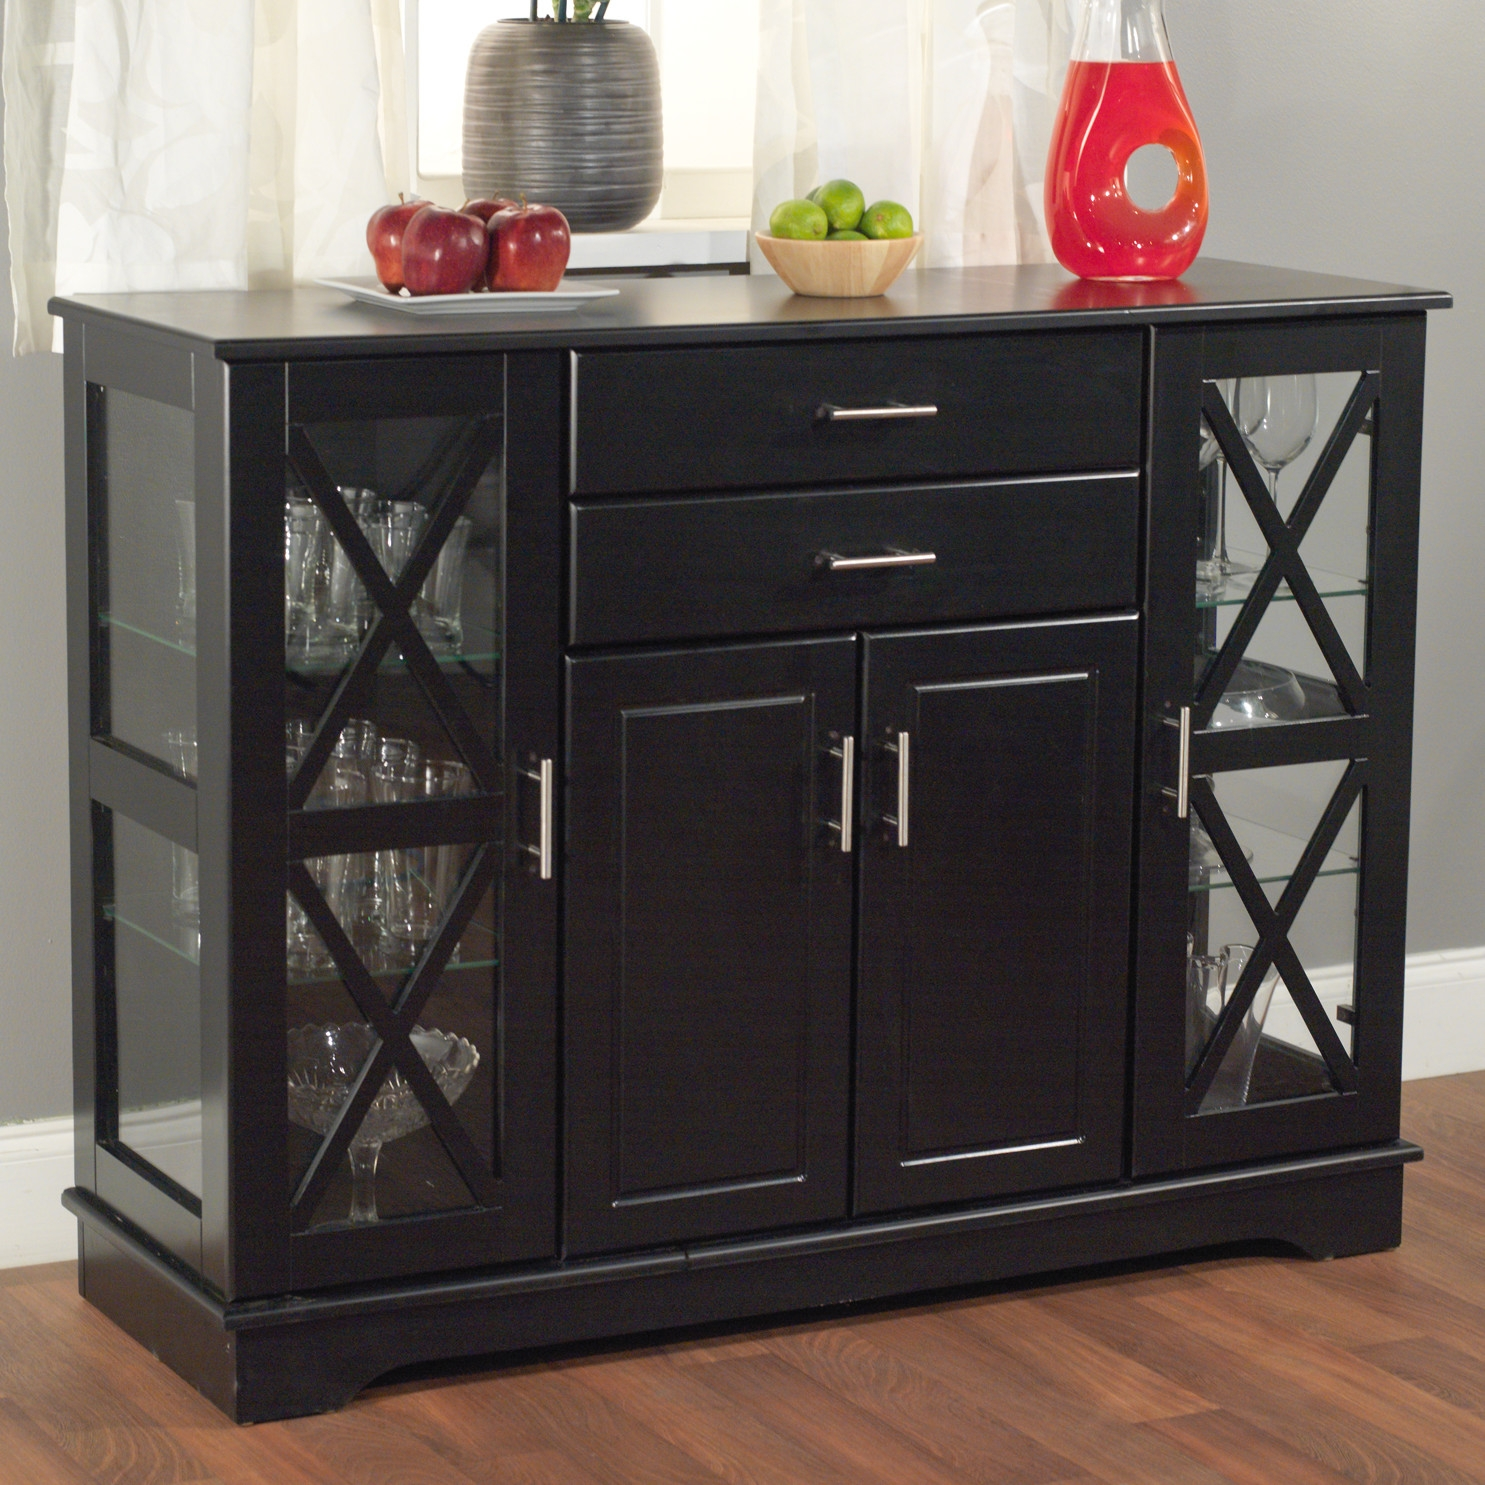 Black Wood Buffet Dining Room Sideboard With Gl Doors Fastfurnishings